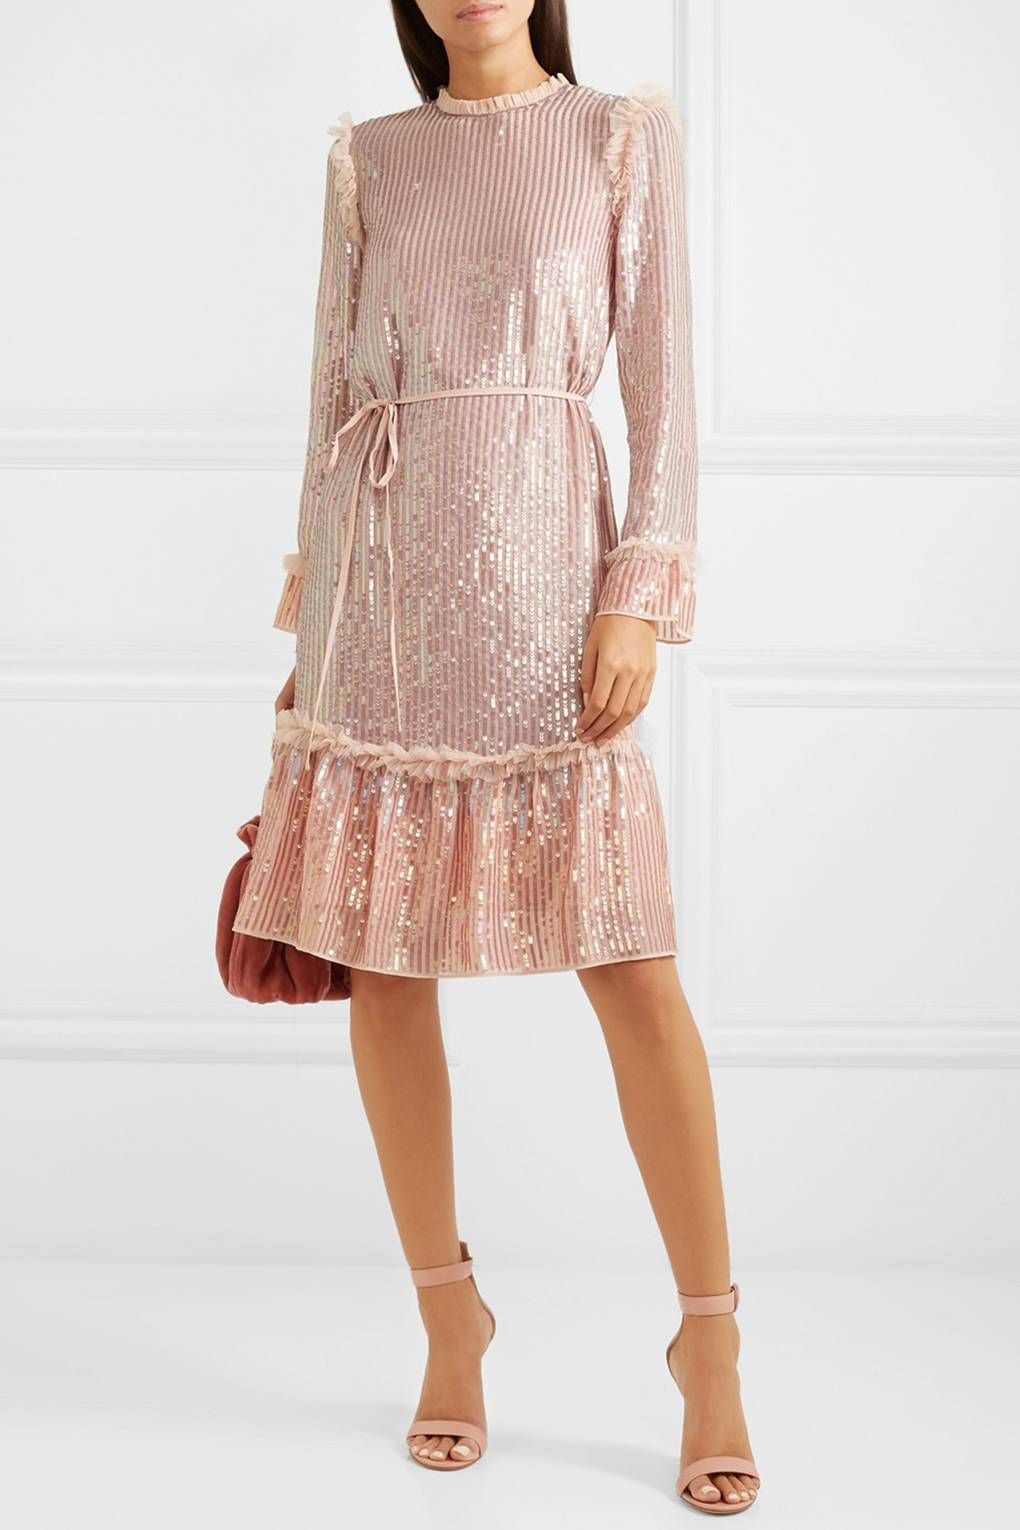 Chic Spring Wedding Guest Dresses What To Wear To A Wedding In